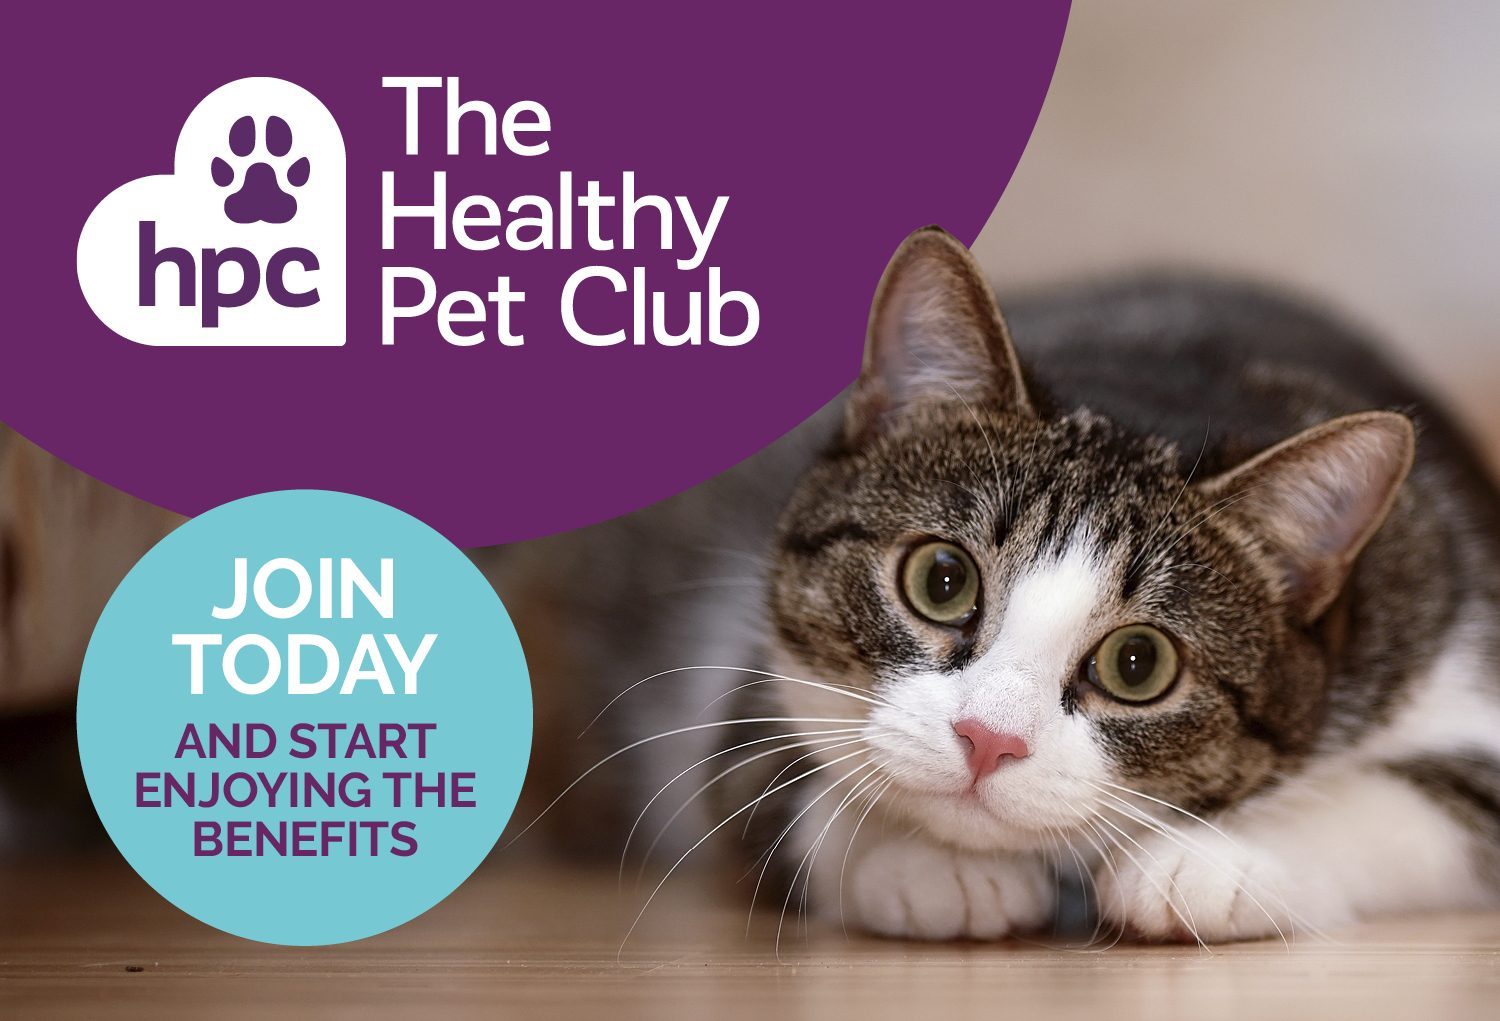 Sign up to The Healthy Pet Club today